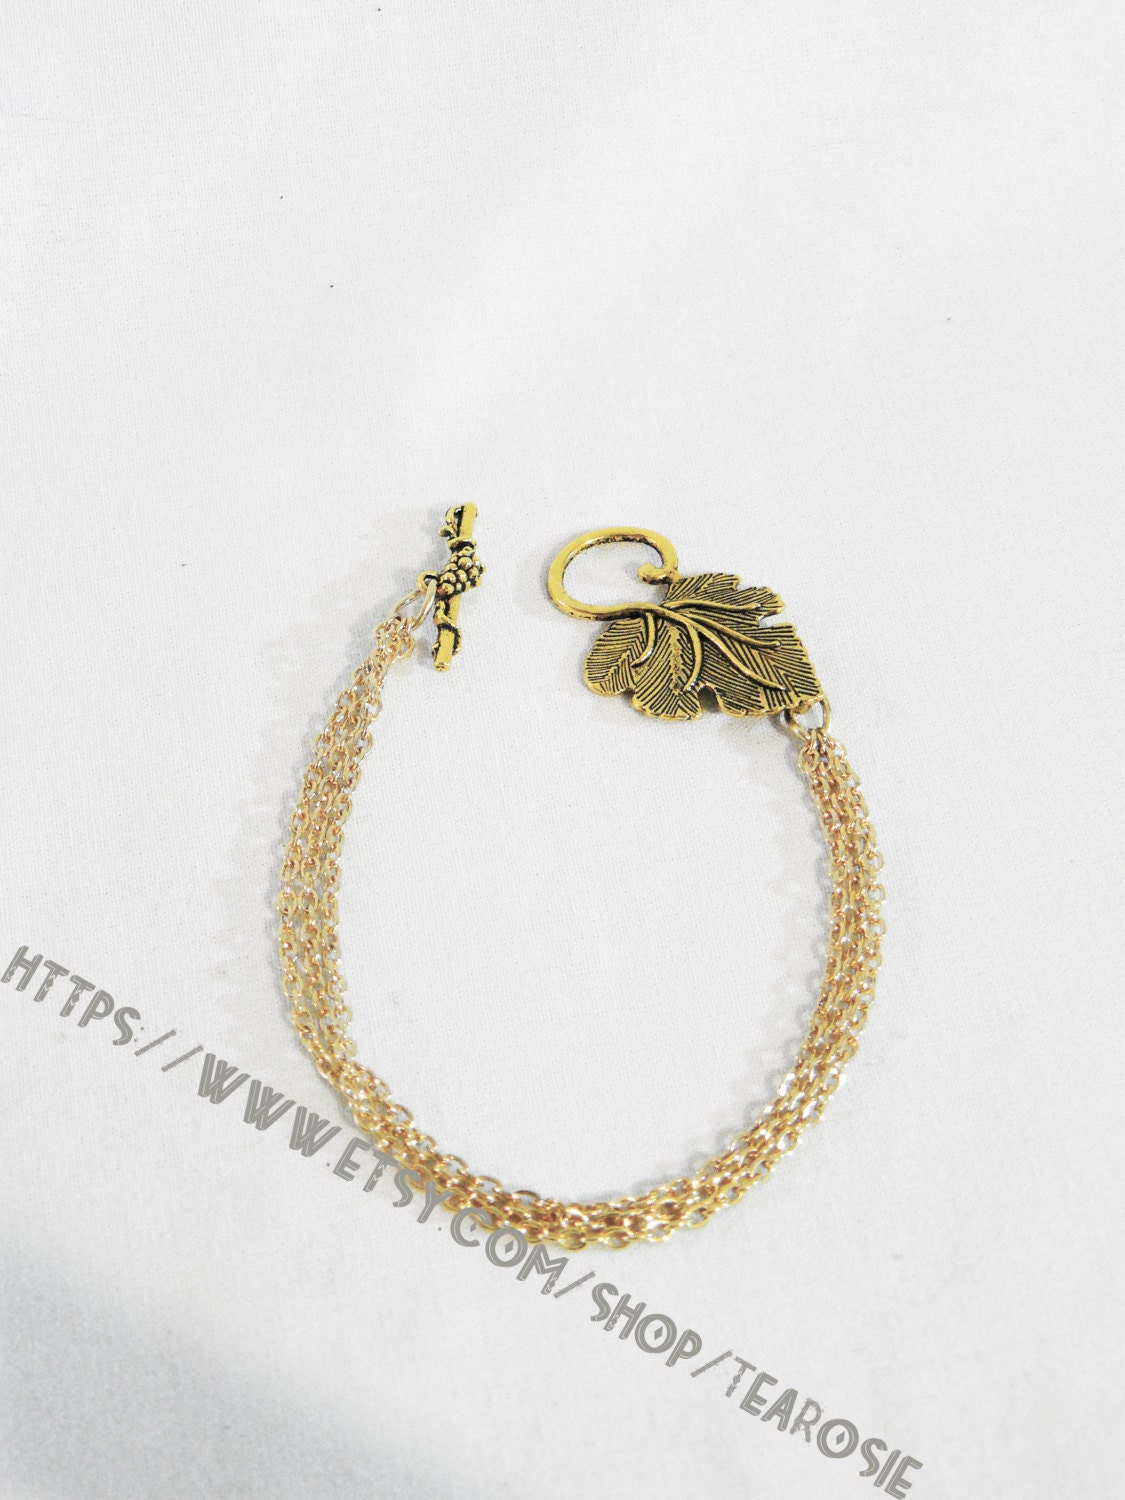 Delicate Handmade Three Tiered Gold Plated Chain Bracelet w/ Leaf and ...